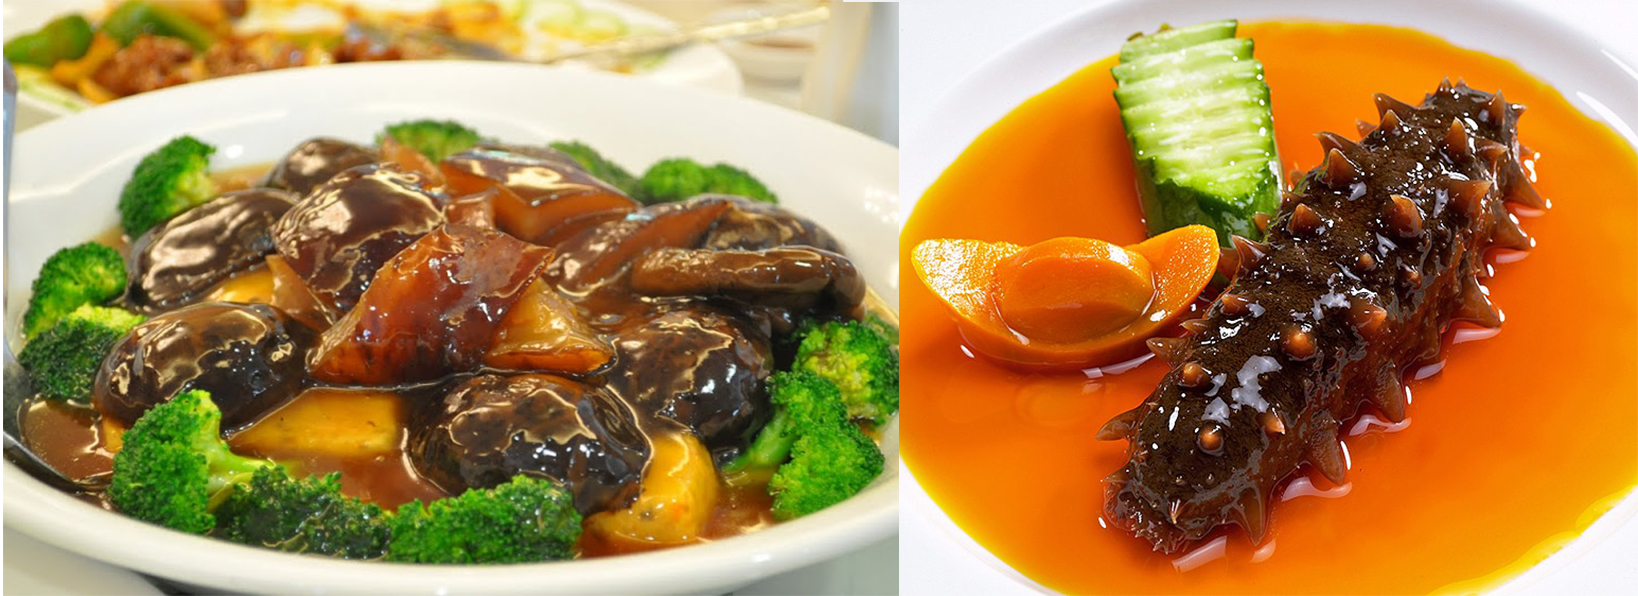 Yummy... Eat this dish sure Ong wan! Images from ChinaFoodIngredients and MalaysiaMostWanted